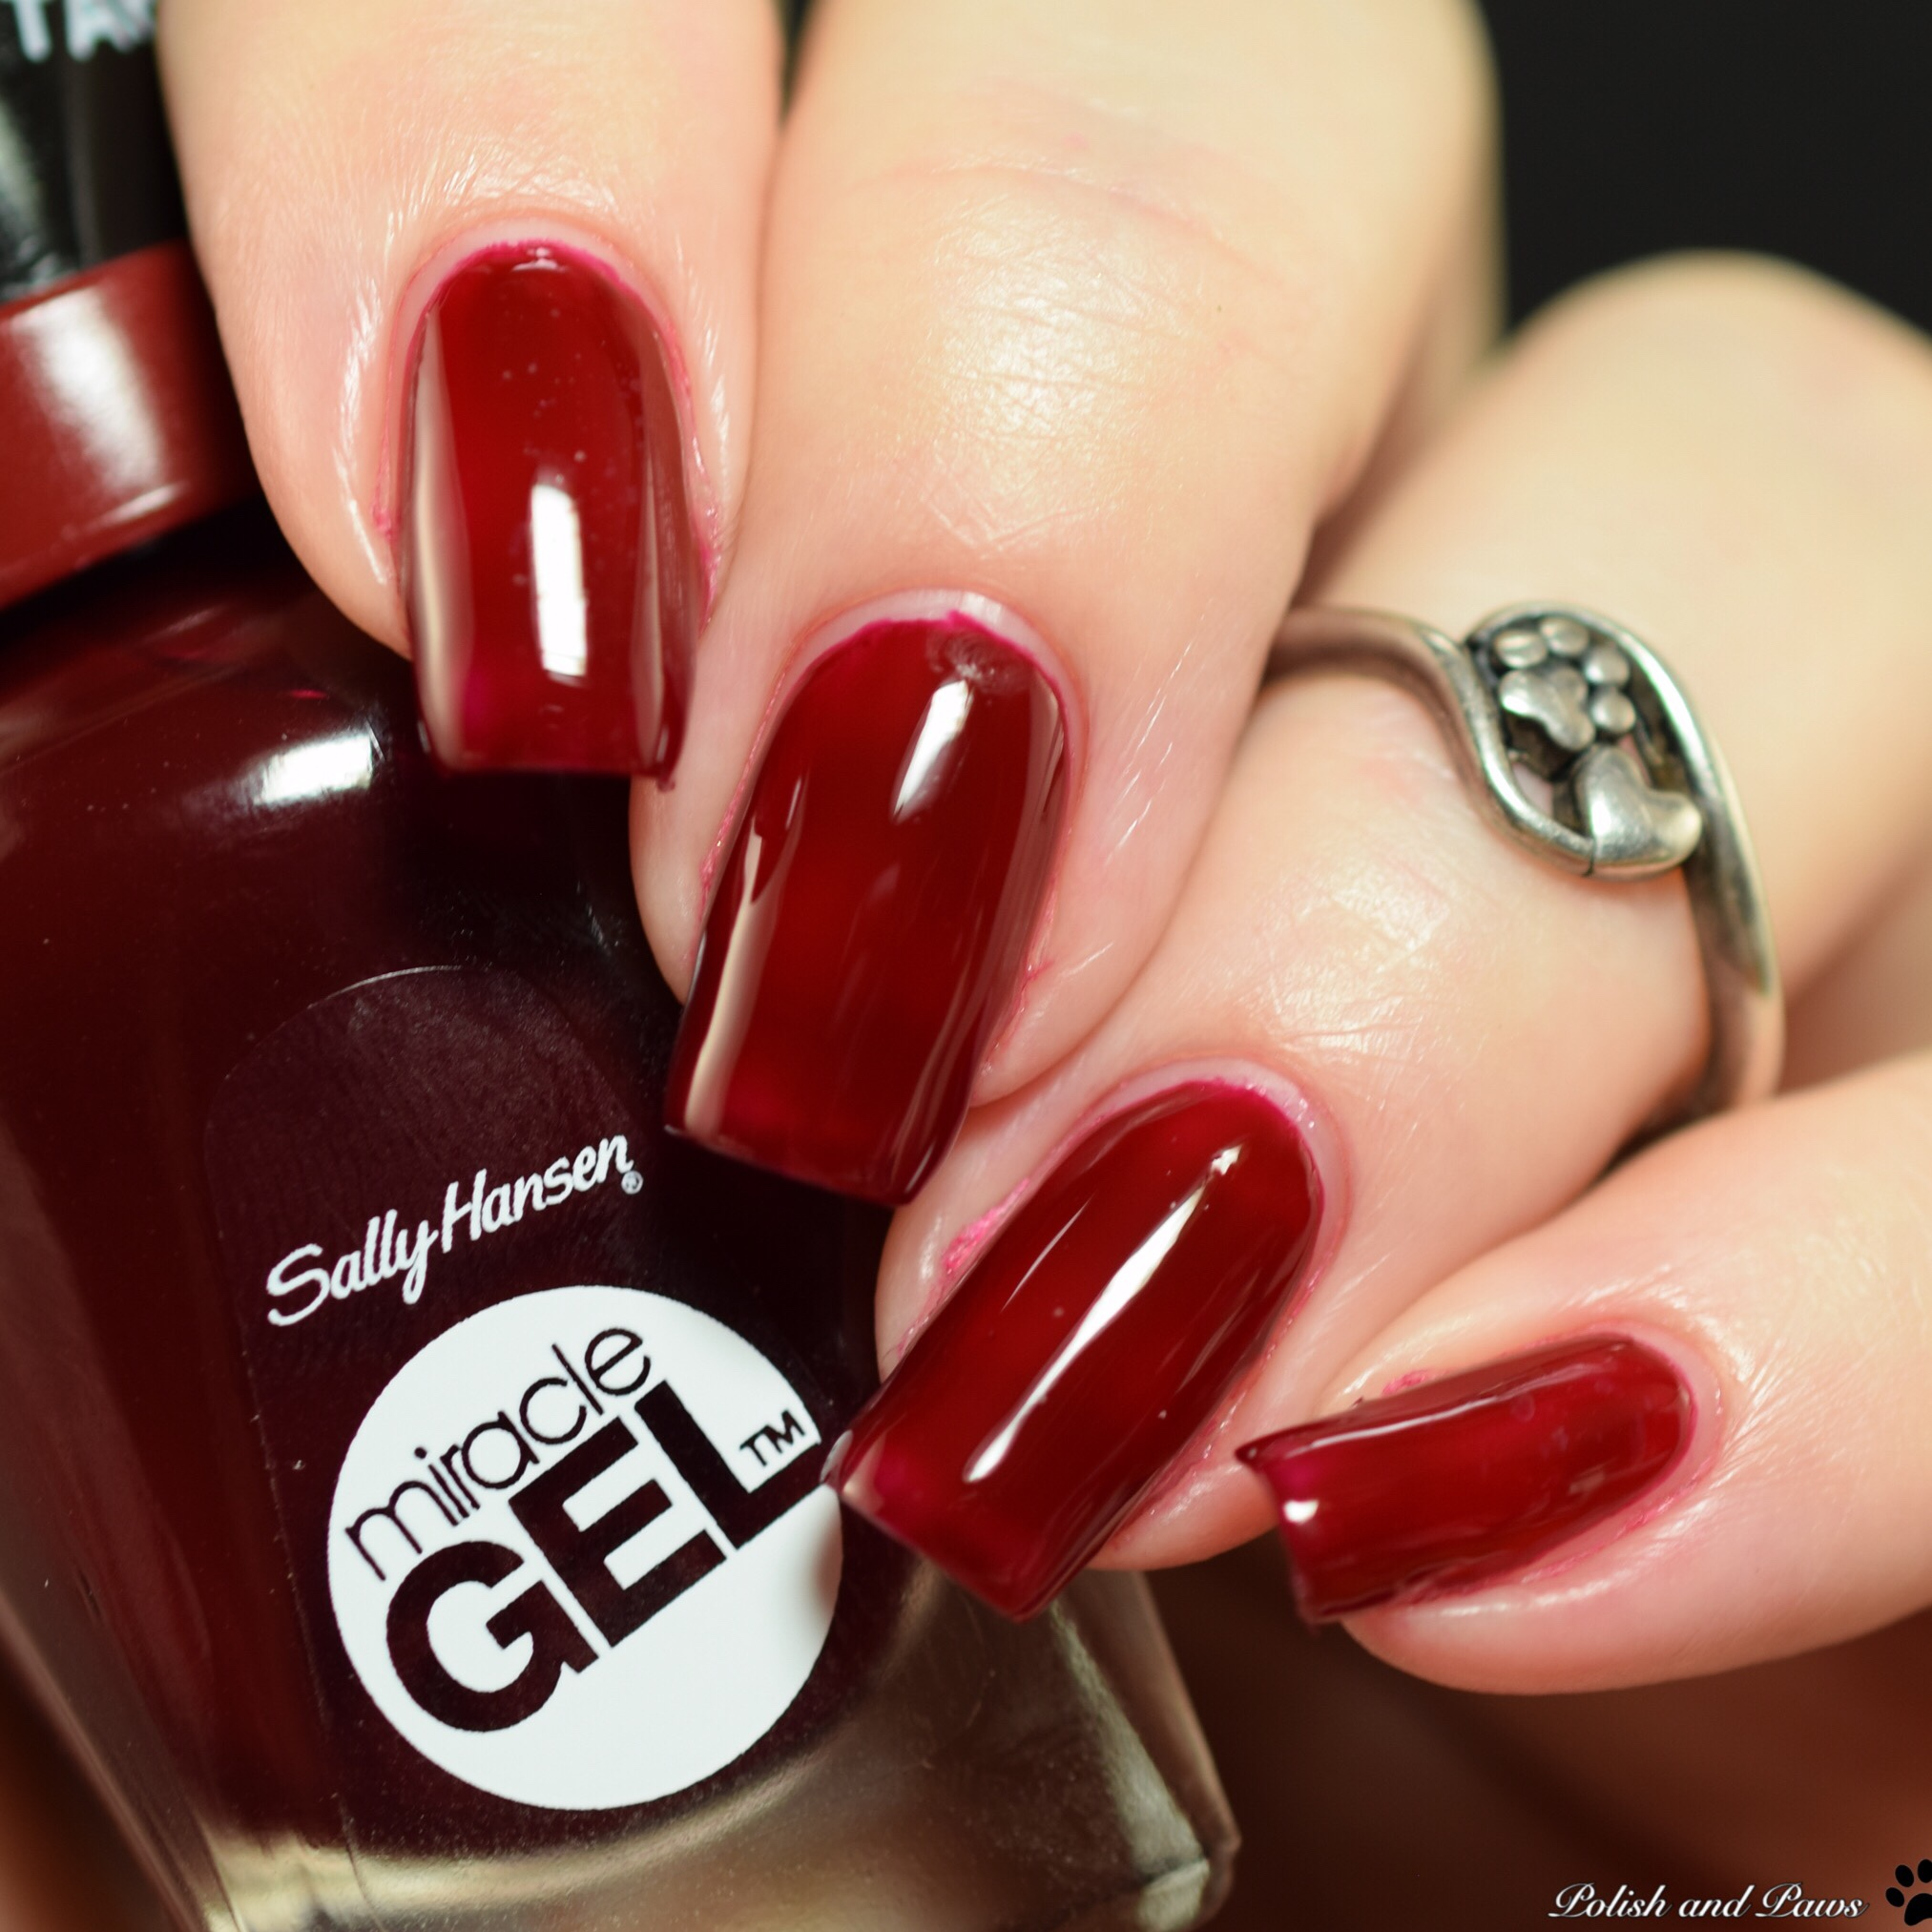 Sally Hansen Miracle Gel Can't Beat Royalty